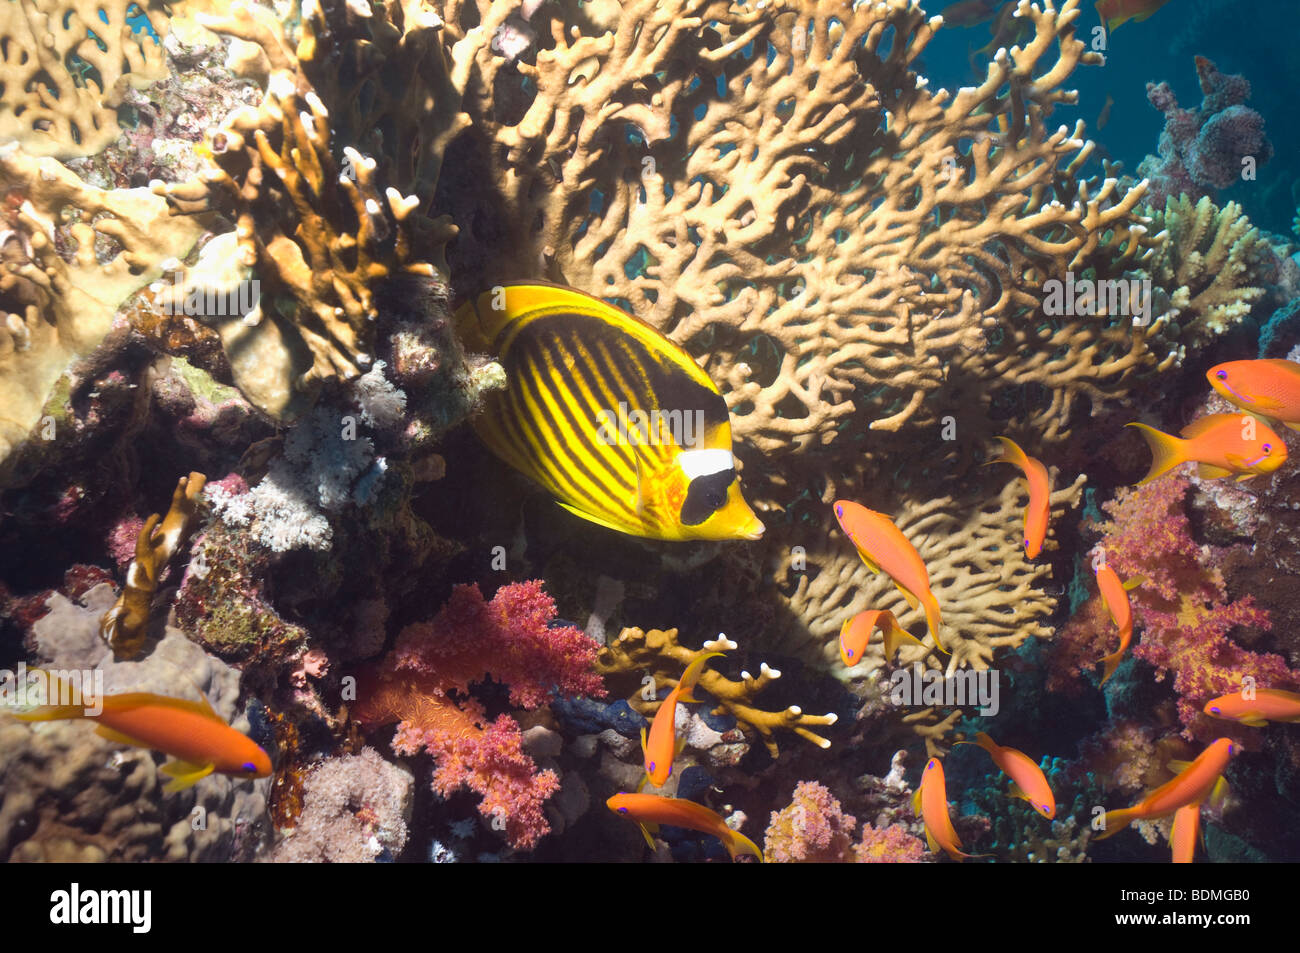 Red Sea raccoon butterflyfish (Chaetodon fasciatus) with Lyretail anthias and fire coral. Egypt, Red Sea. - Stock Image